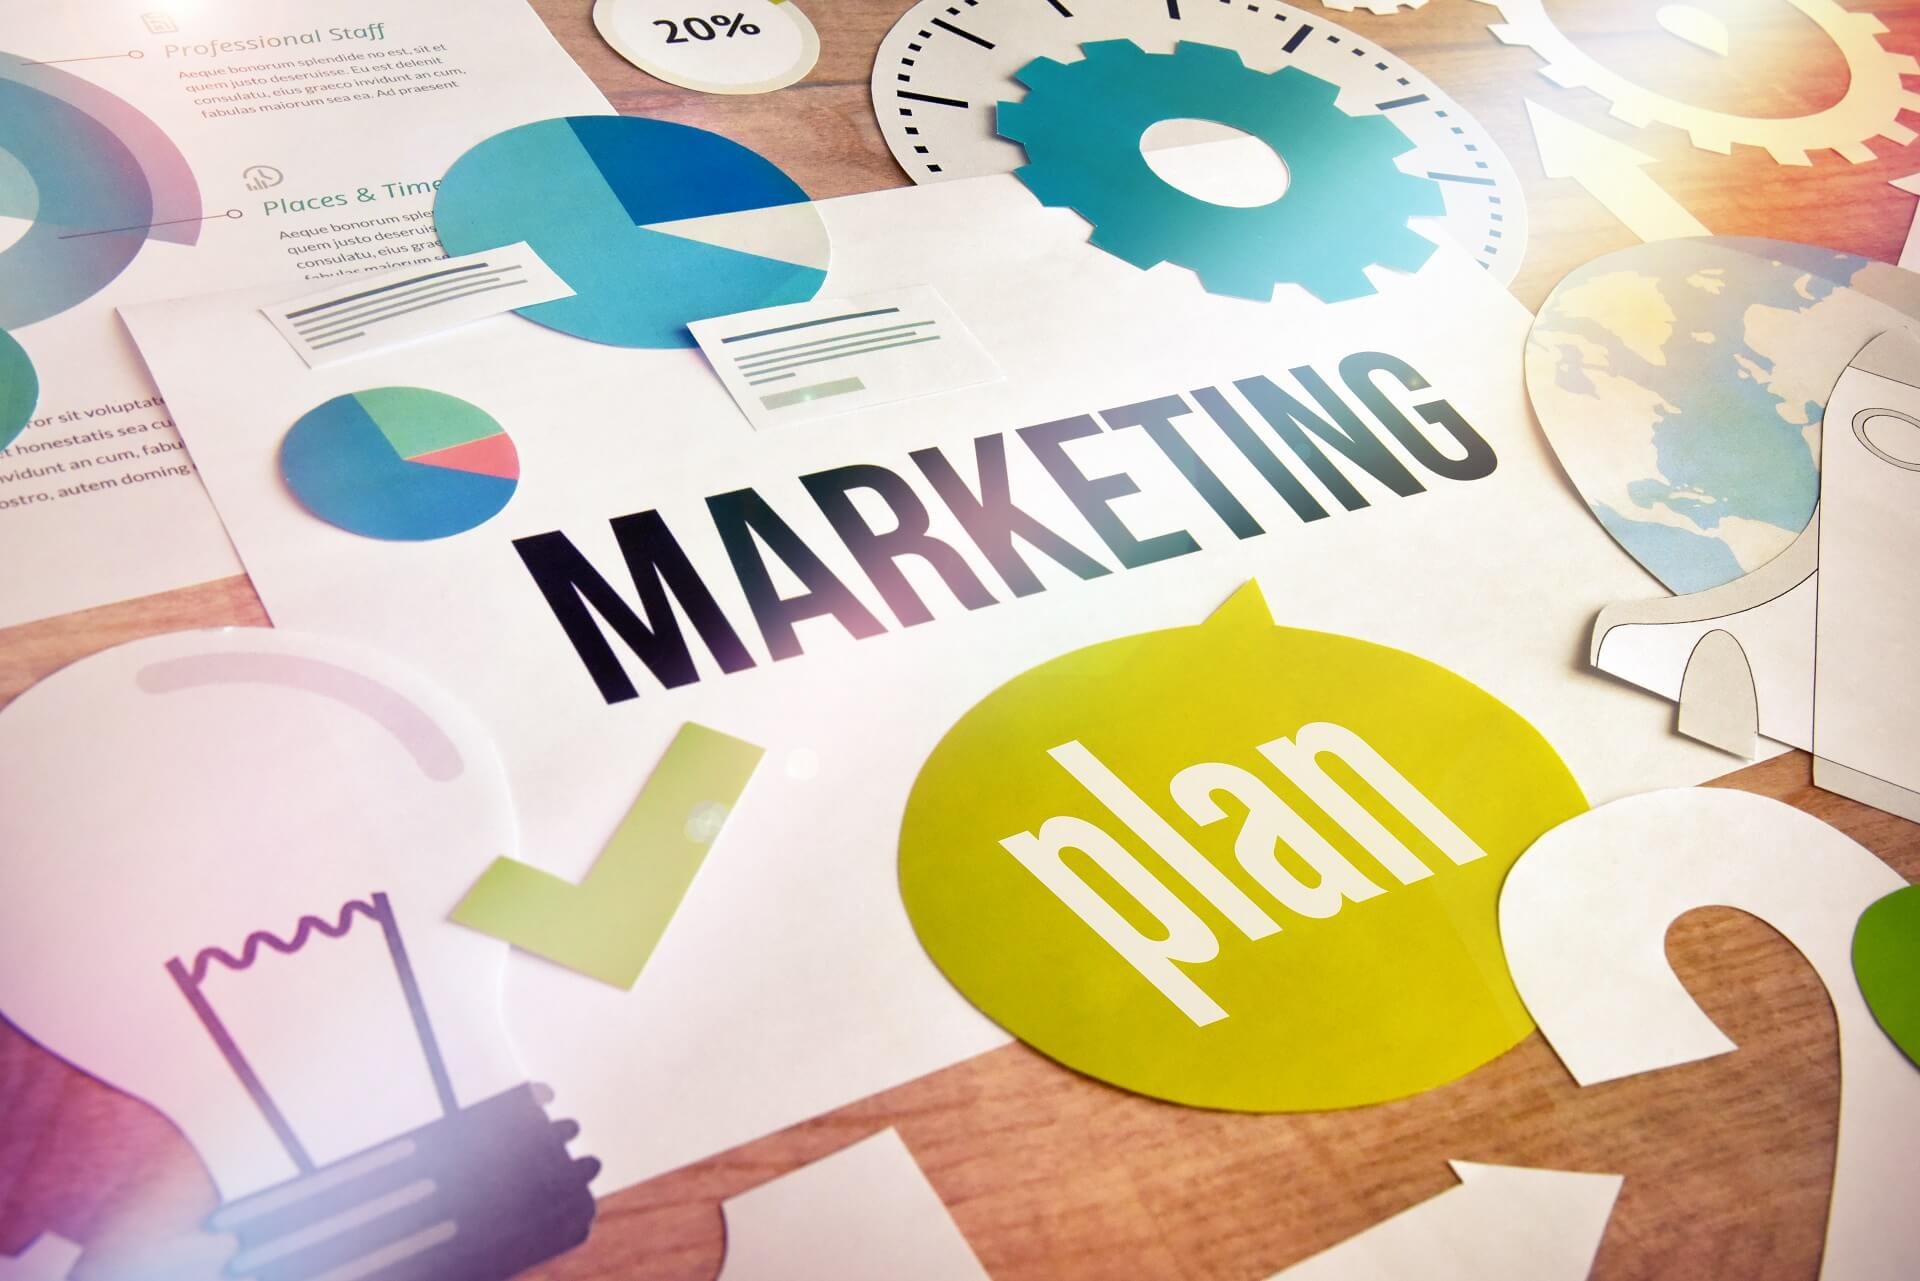 marketing plan concept with business symbols for great idea, international campaign, strategy, 20% increase